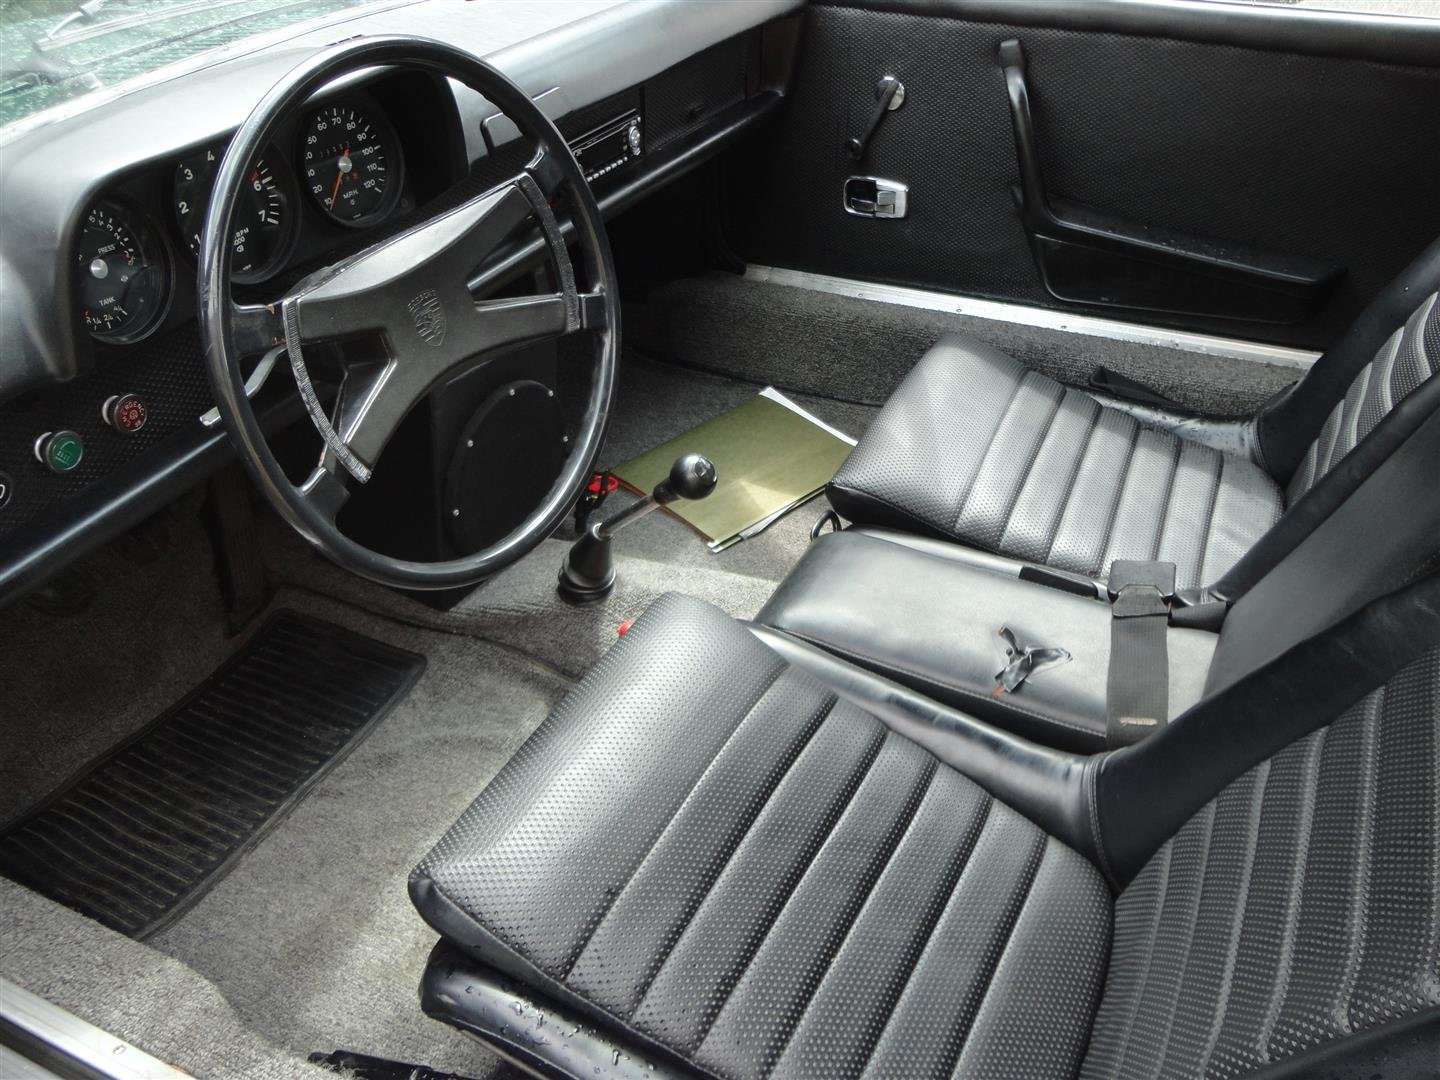 1970 Porsche 914 '70 green For Sale (picture 3 of 6)